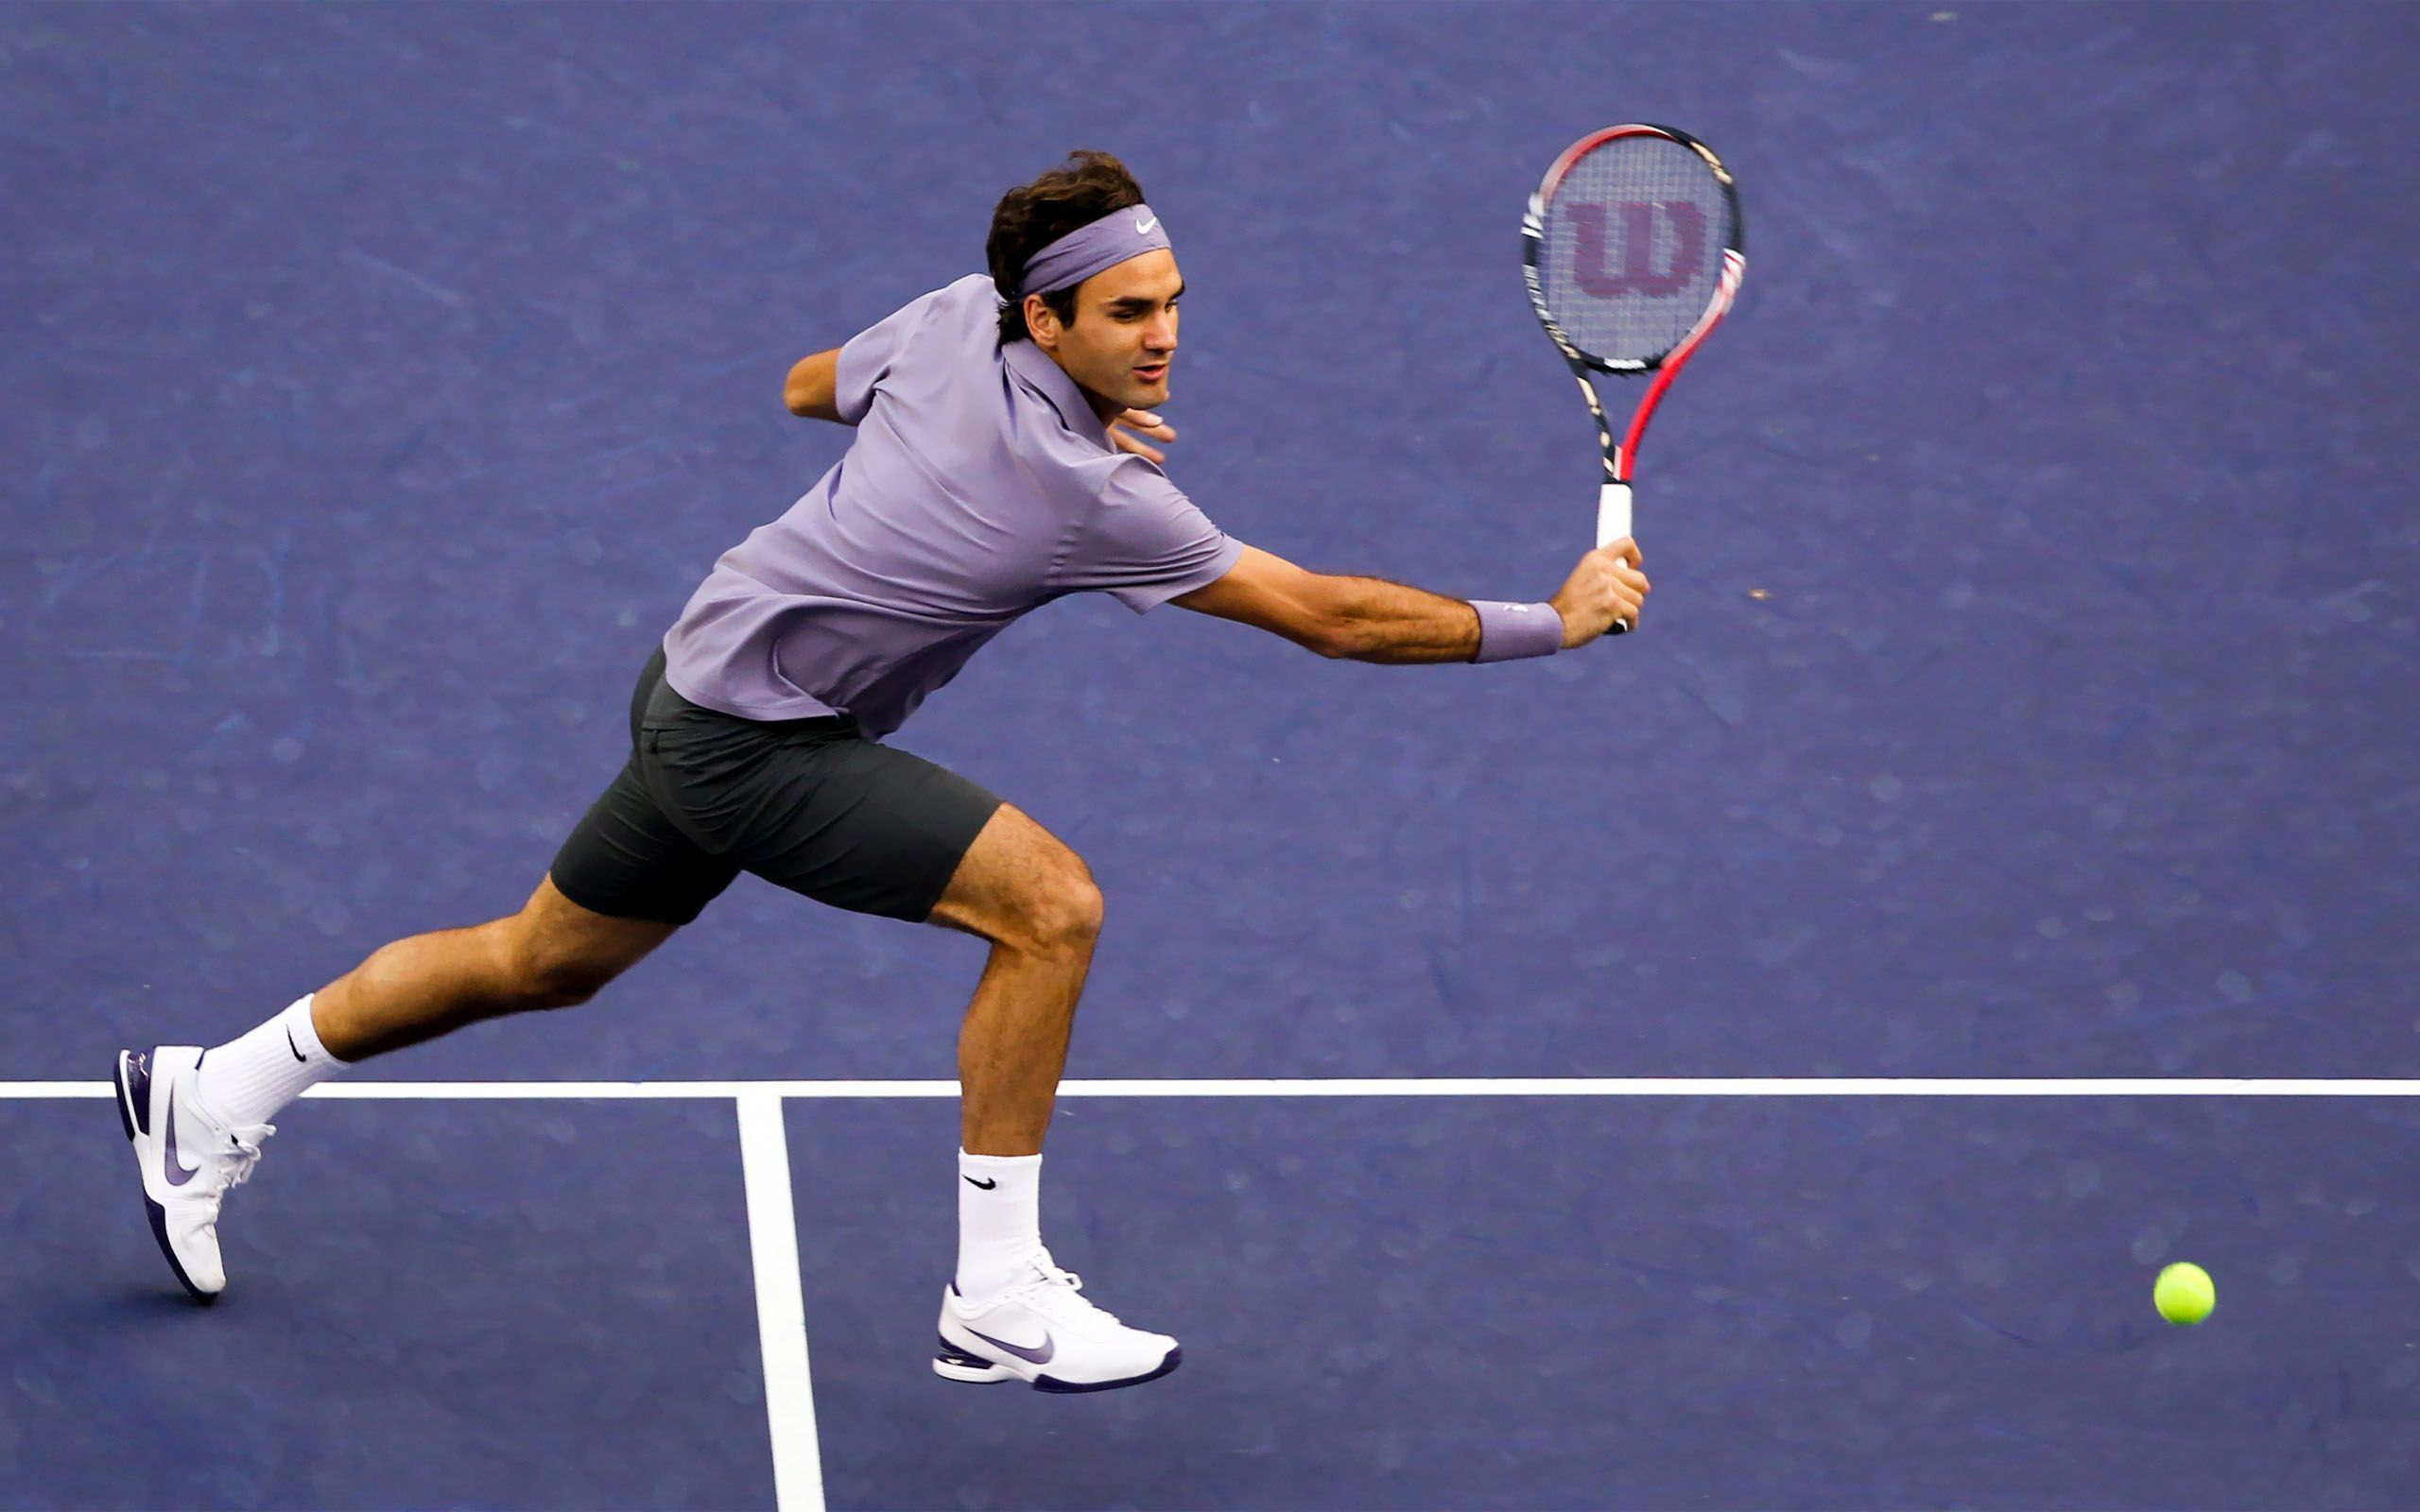 Roger federer tennis exclusive hd wallpapers 3631 roger federer roger federer tennis exclusive hd wallpapers 3631 voltagebd Image collections